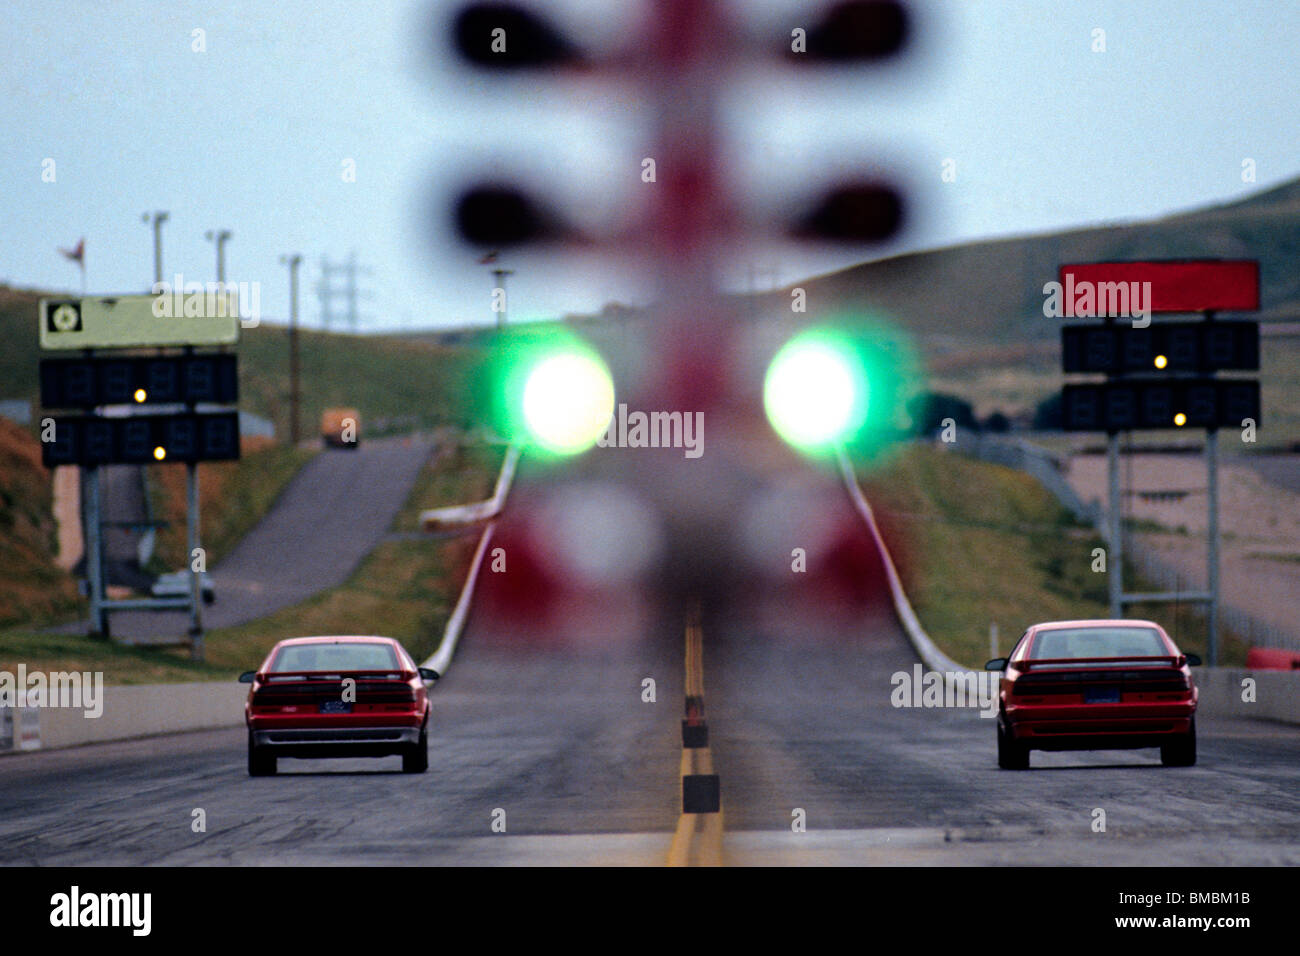 Drag race light tree honda crf250x engine diagram simple wiring drag racing starting lights stock photo 29760679 alamy drag racing starting lights bmbm1b stock photo drag aloadofball Images